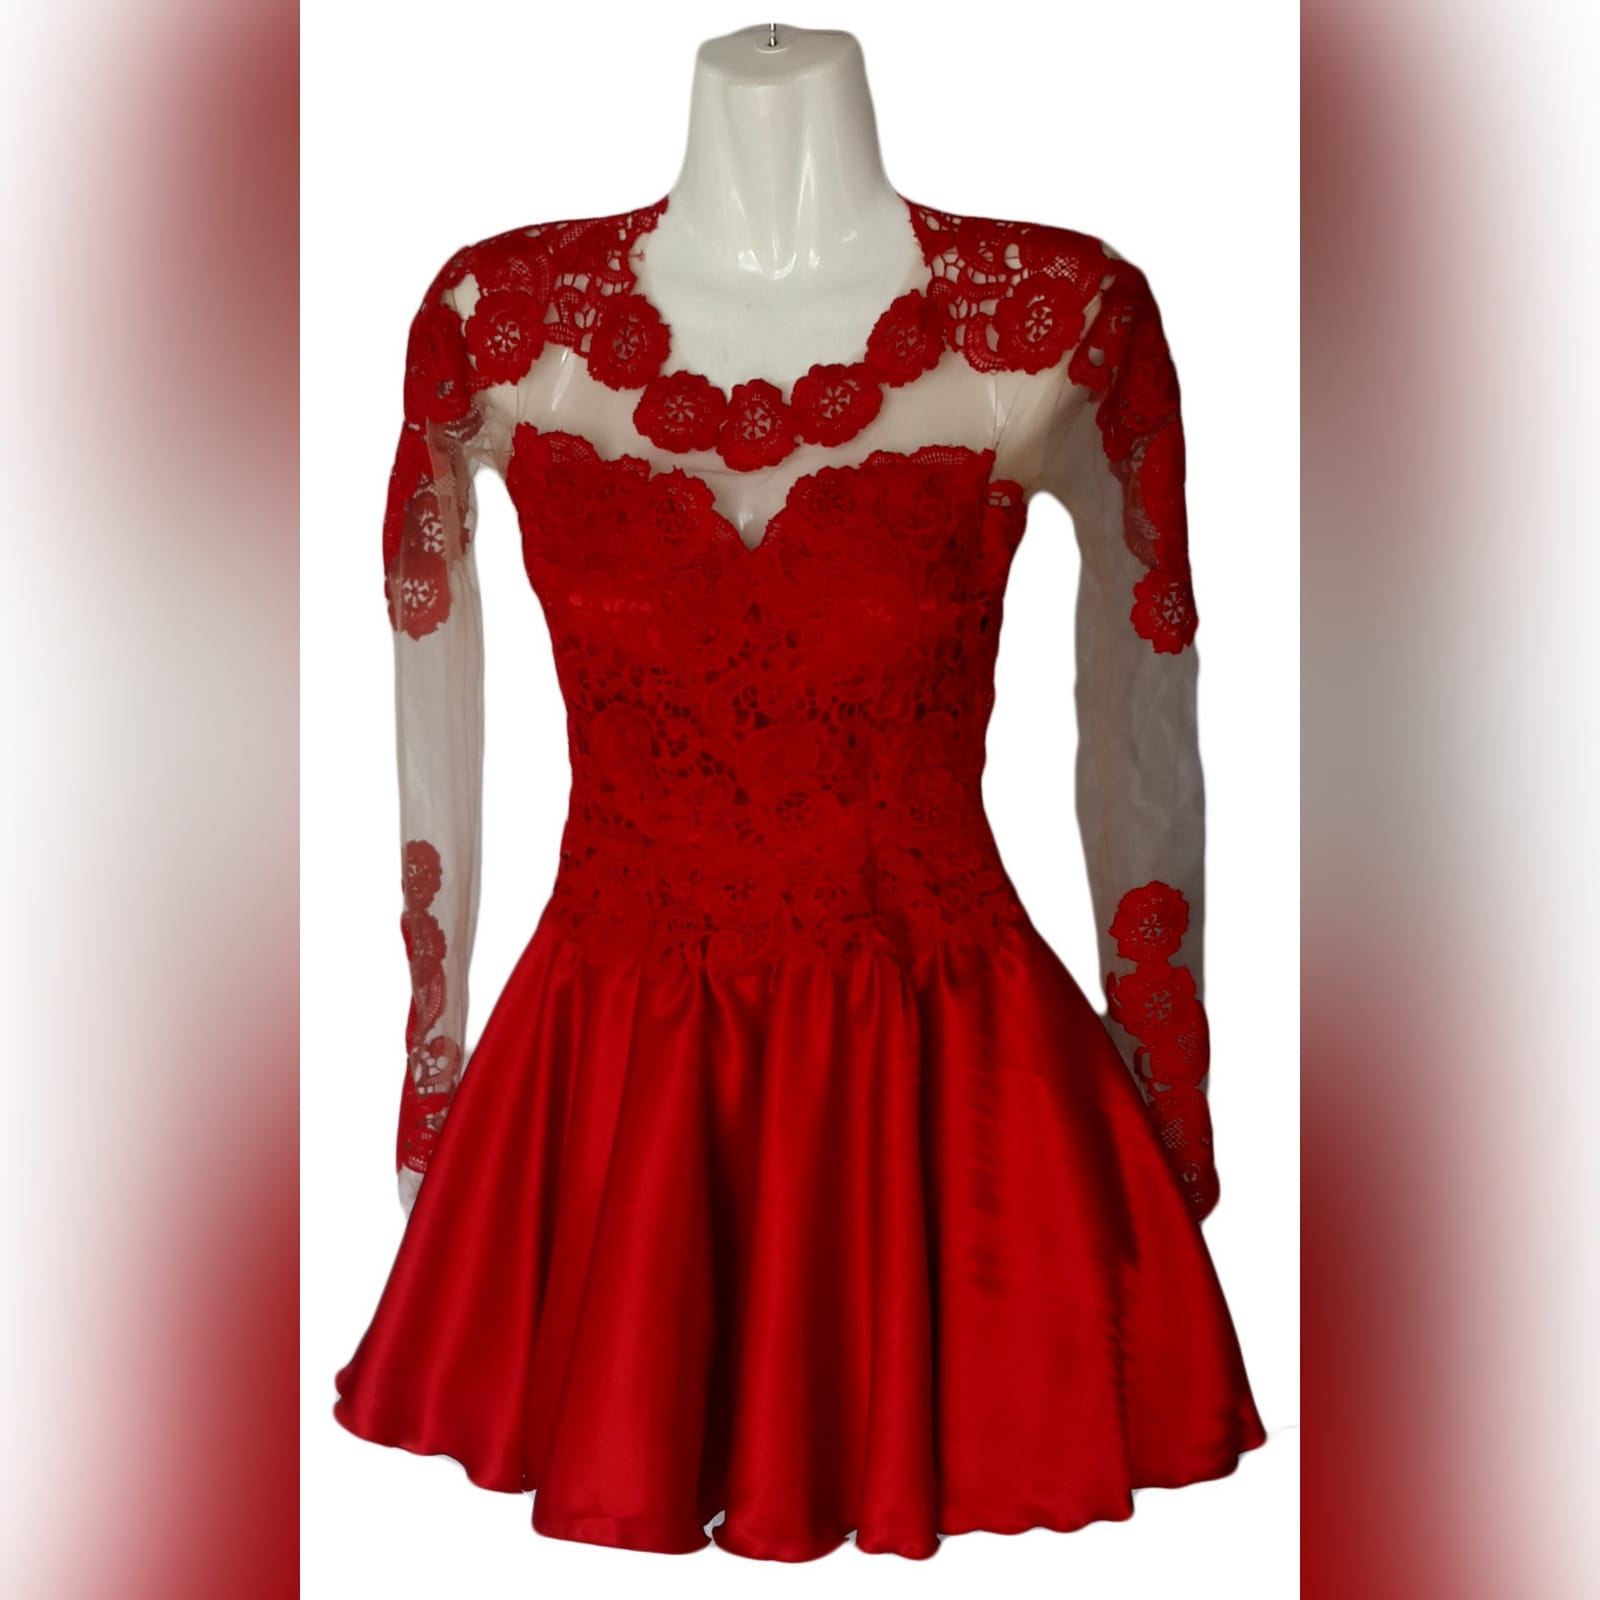 21st birthday party short evening dress 4 short red lace evening dress for a 21st birthday party. Dress with an illusion back detailed with lace, neckline and sleeves, bodice fully laced